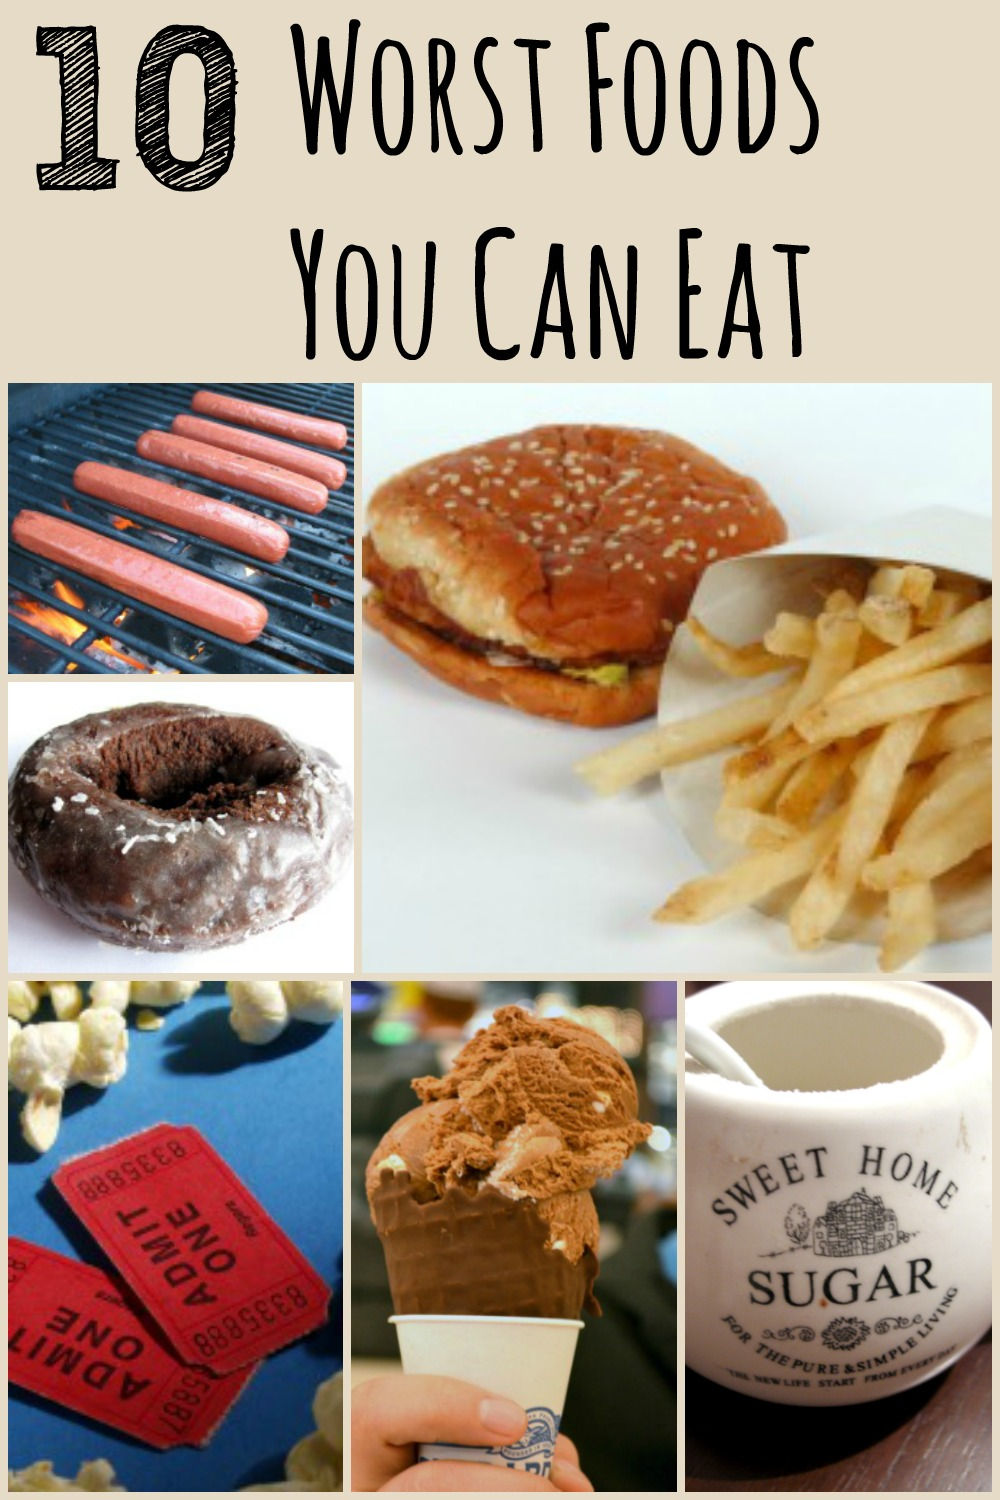 While most foods can be eaten in moderation, there are just some that you should completely cut out of your diet. Here are the 10 worst things you can eat!